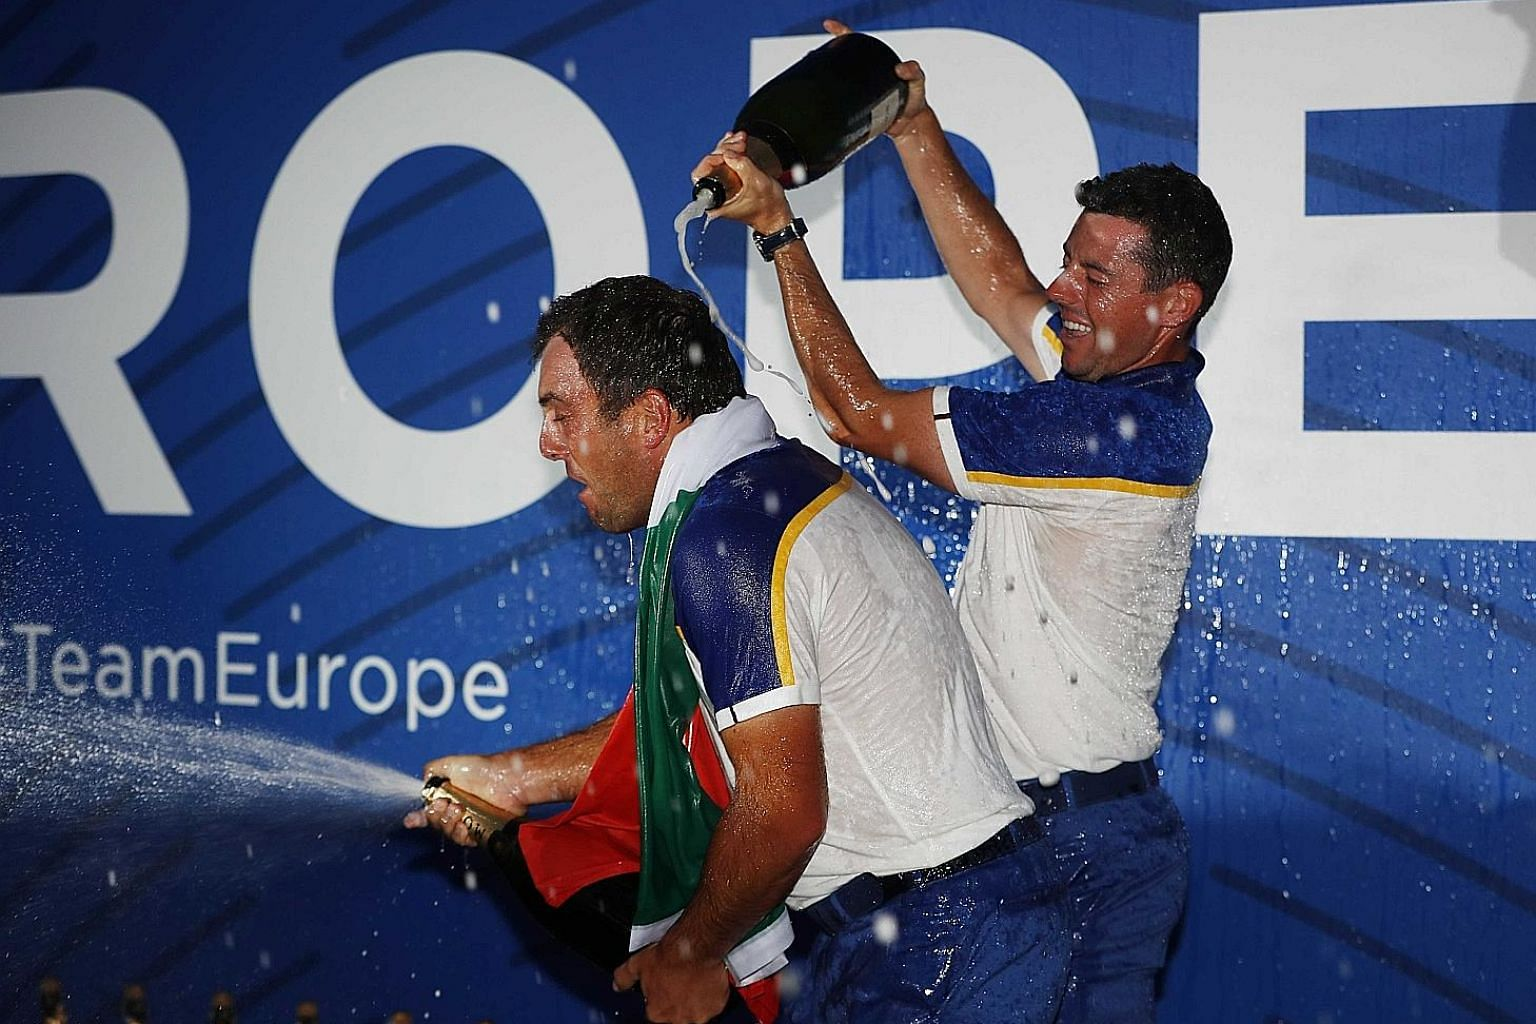 Team Europe's hero Francesco Molinari spraying the bubbly after their thrashing of the US at Le Golf National as Rory McIlroy pours more champagne on him.